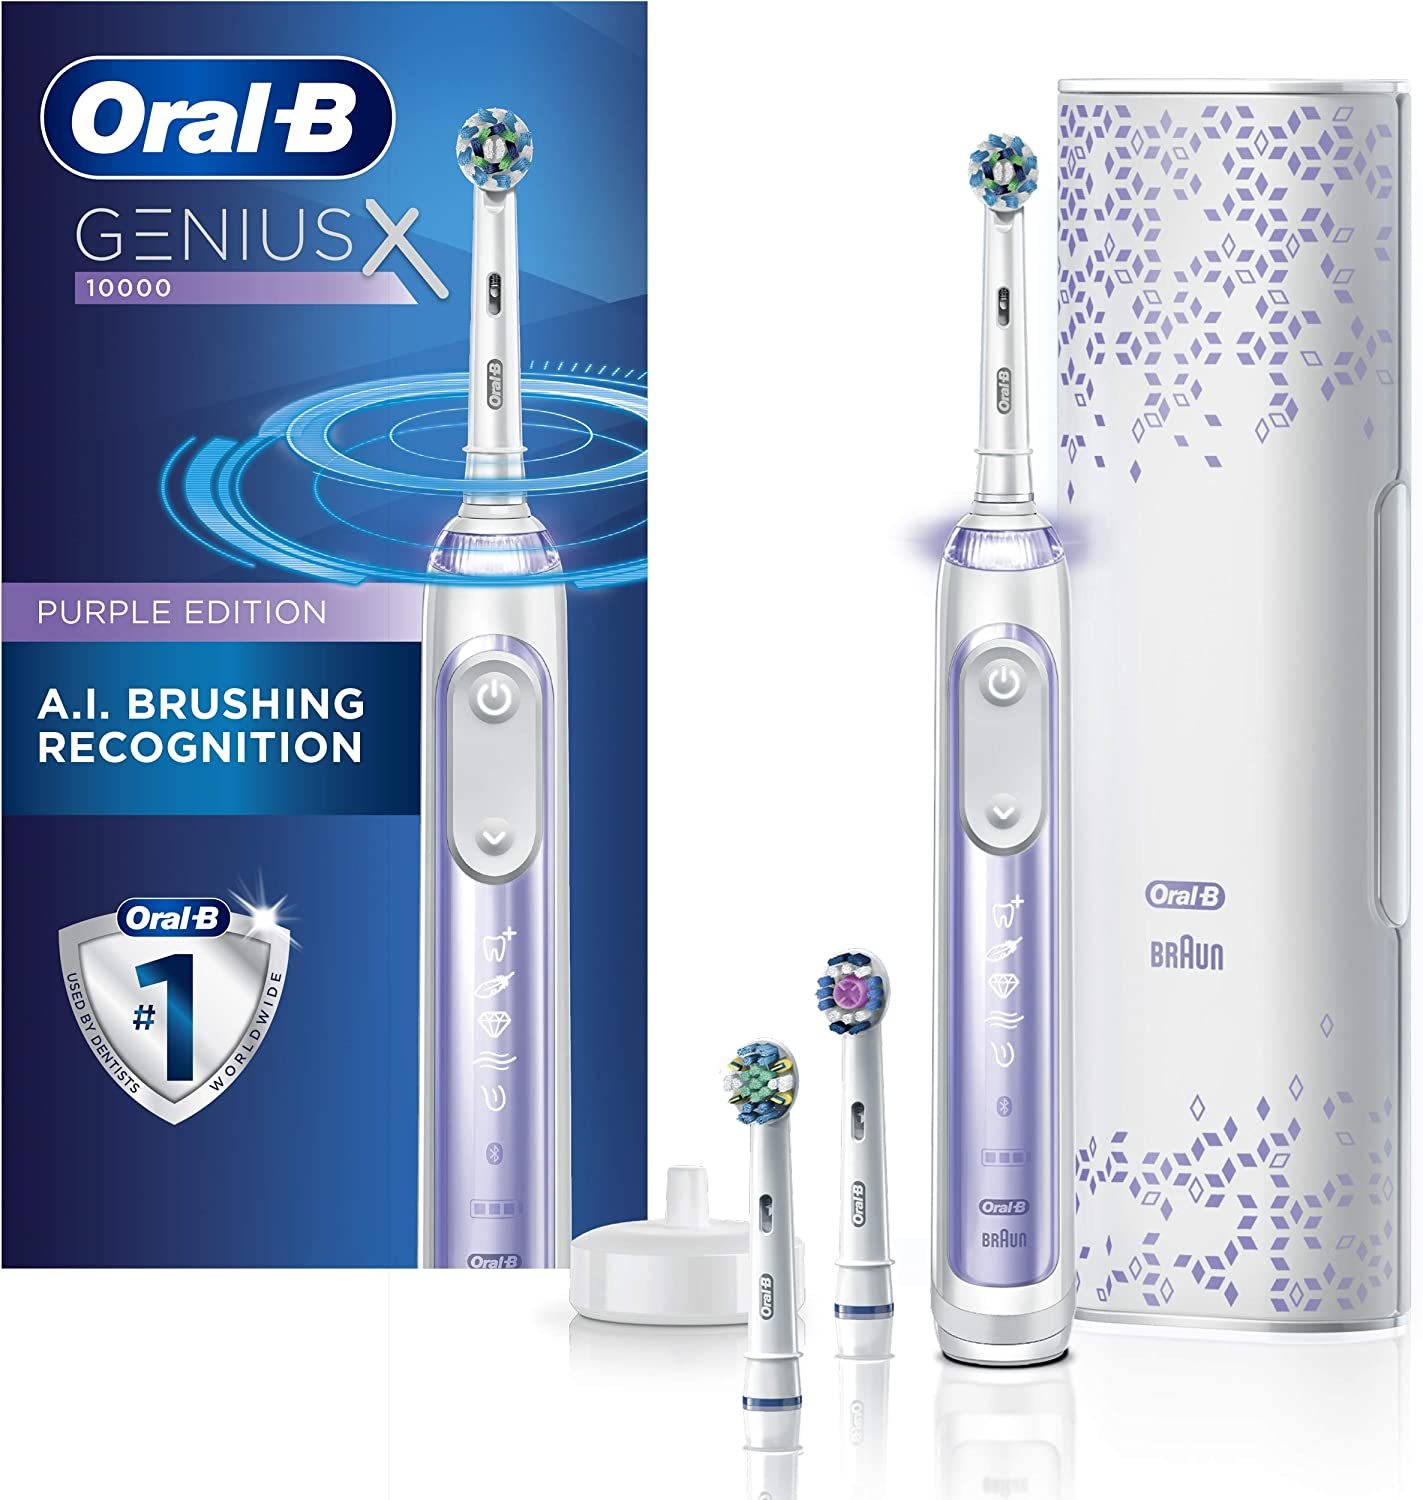 Oral-B GENIUS X Electric Toothbrush Orchid Purple